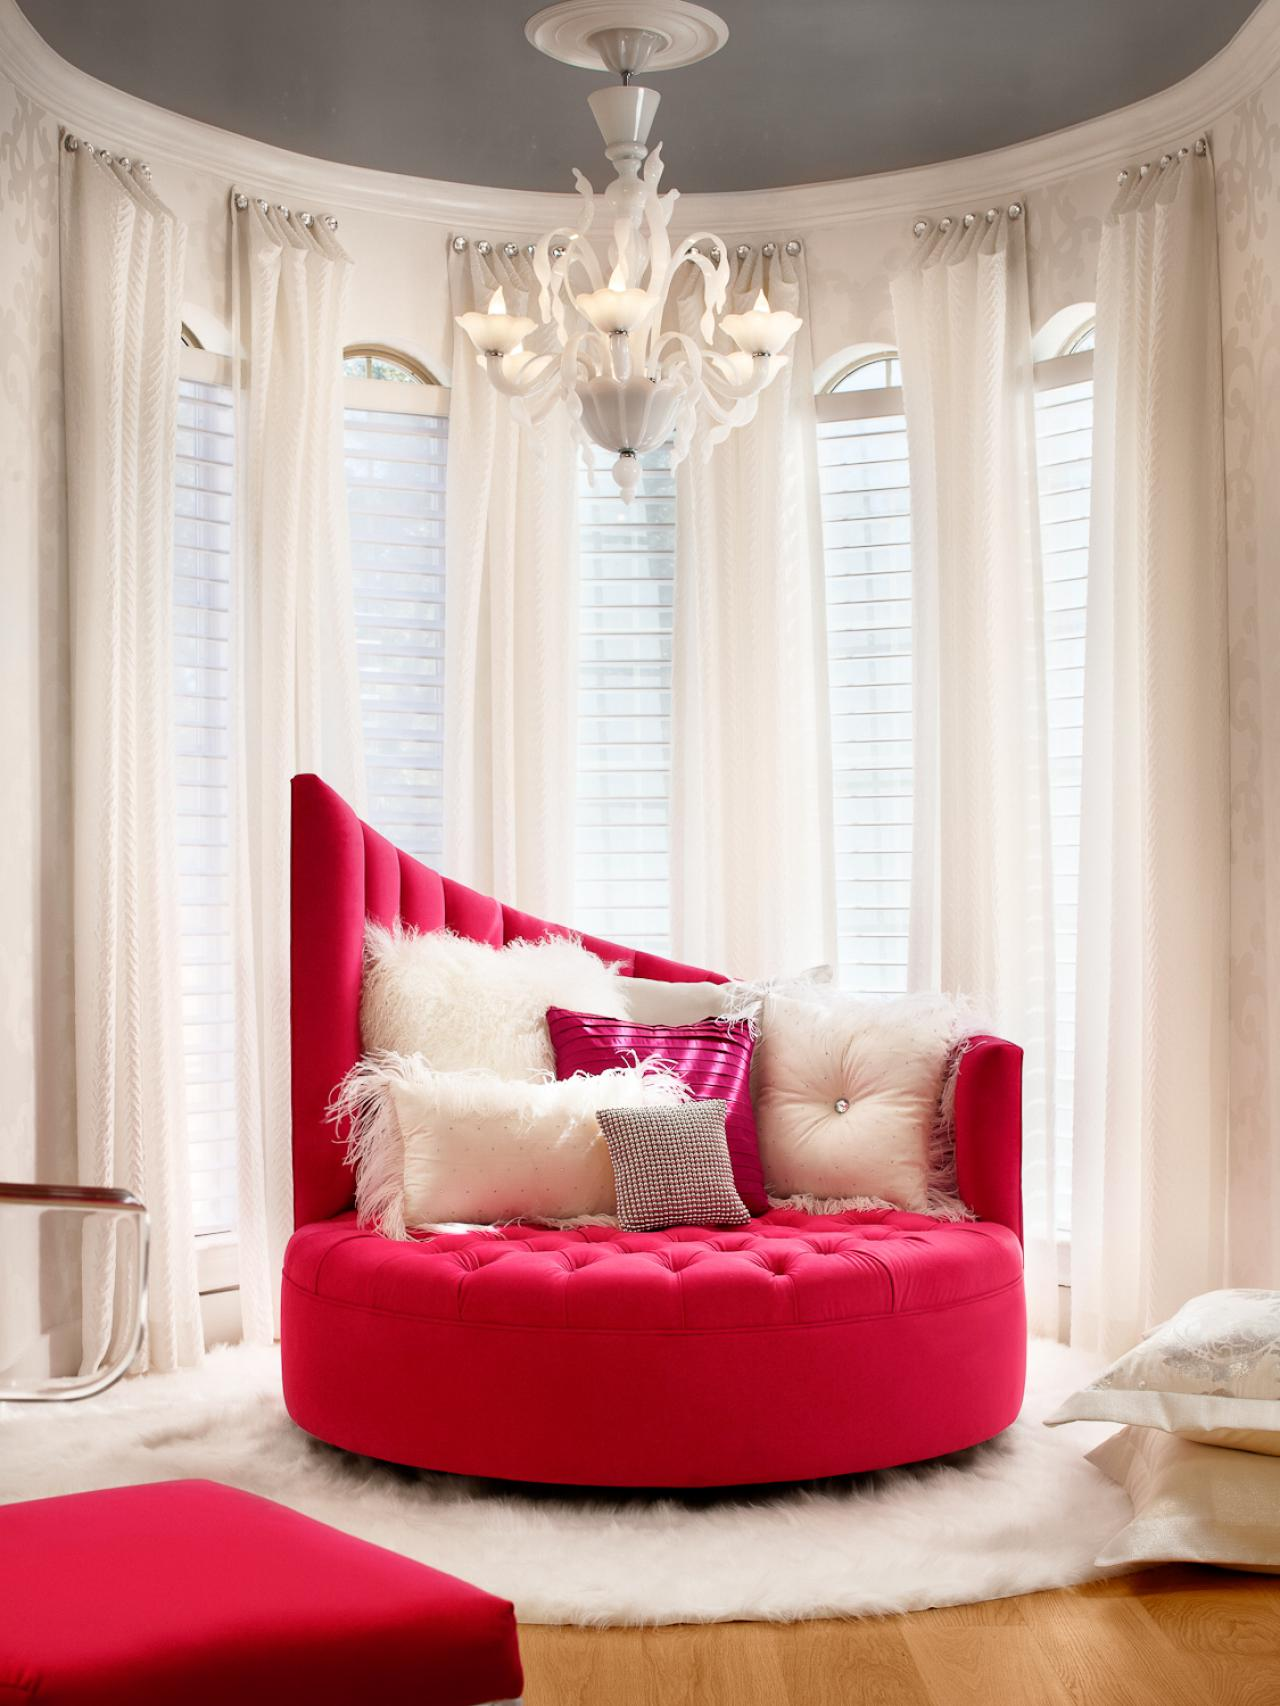 luxury red chairs for bedroom sitting area with fur rug and long white curtains bedroom sitting room furniture